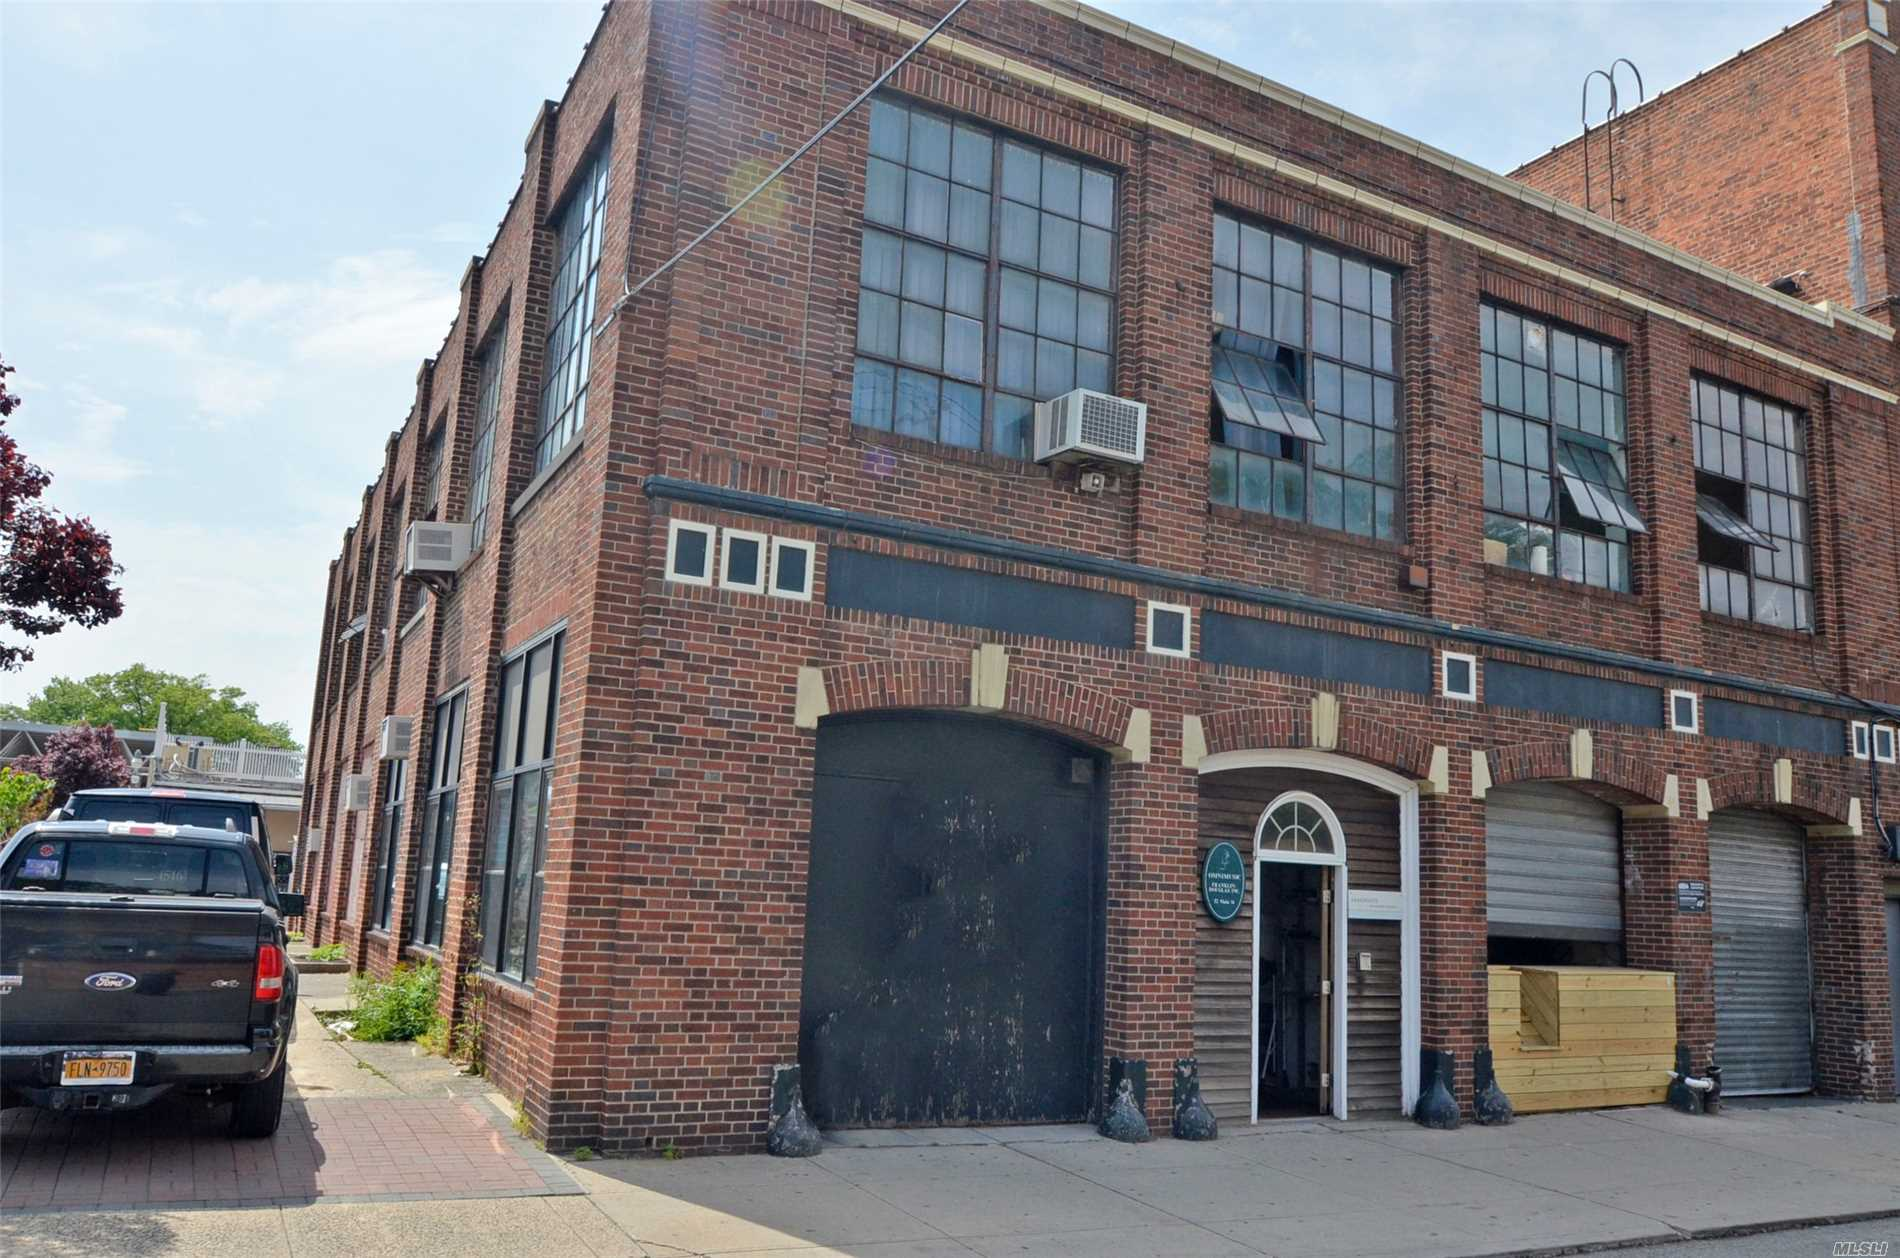 Great opportunity for premium space directly adjacent to Port Washington LIRR station. Store, warehouse space, offices...endless options. 3, 400 sq feet of first floor space with high ceiling. Was in use as recording studio and offices.